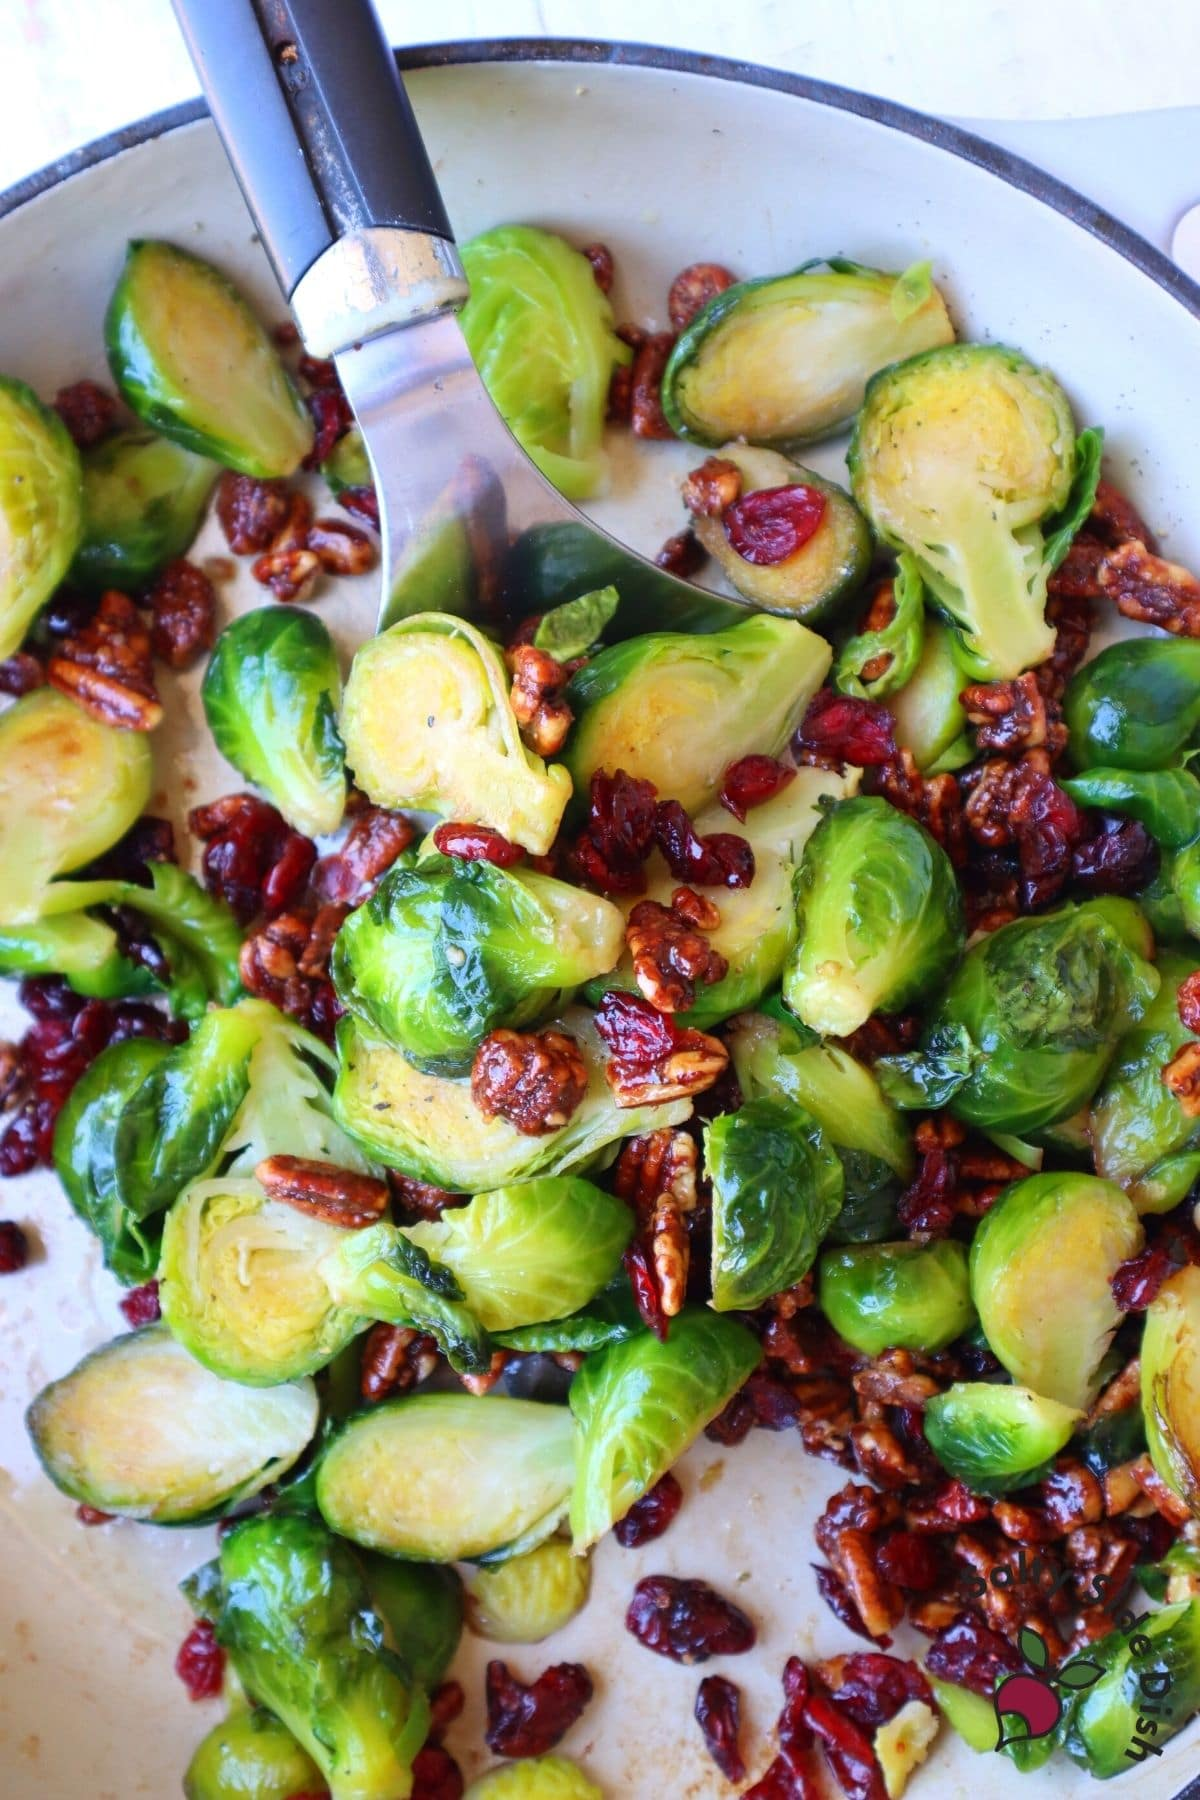 brussels sprouts being served with a spatula